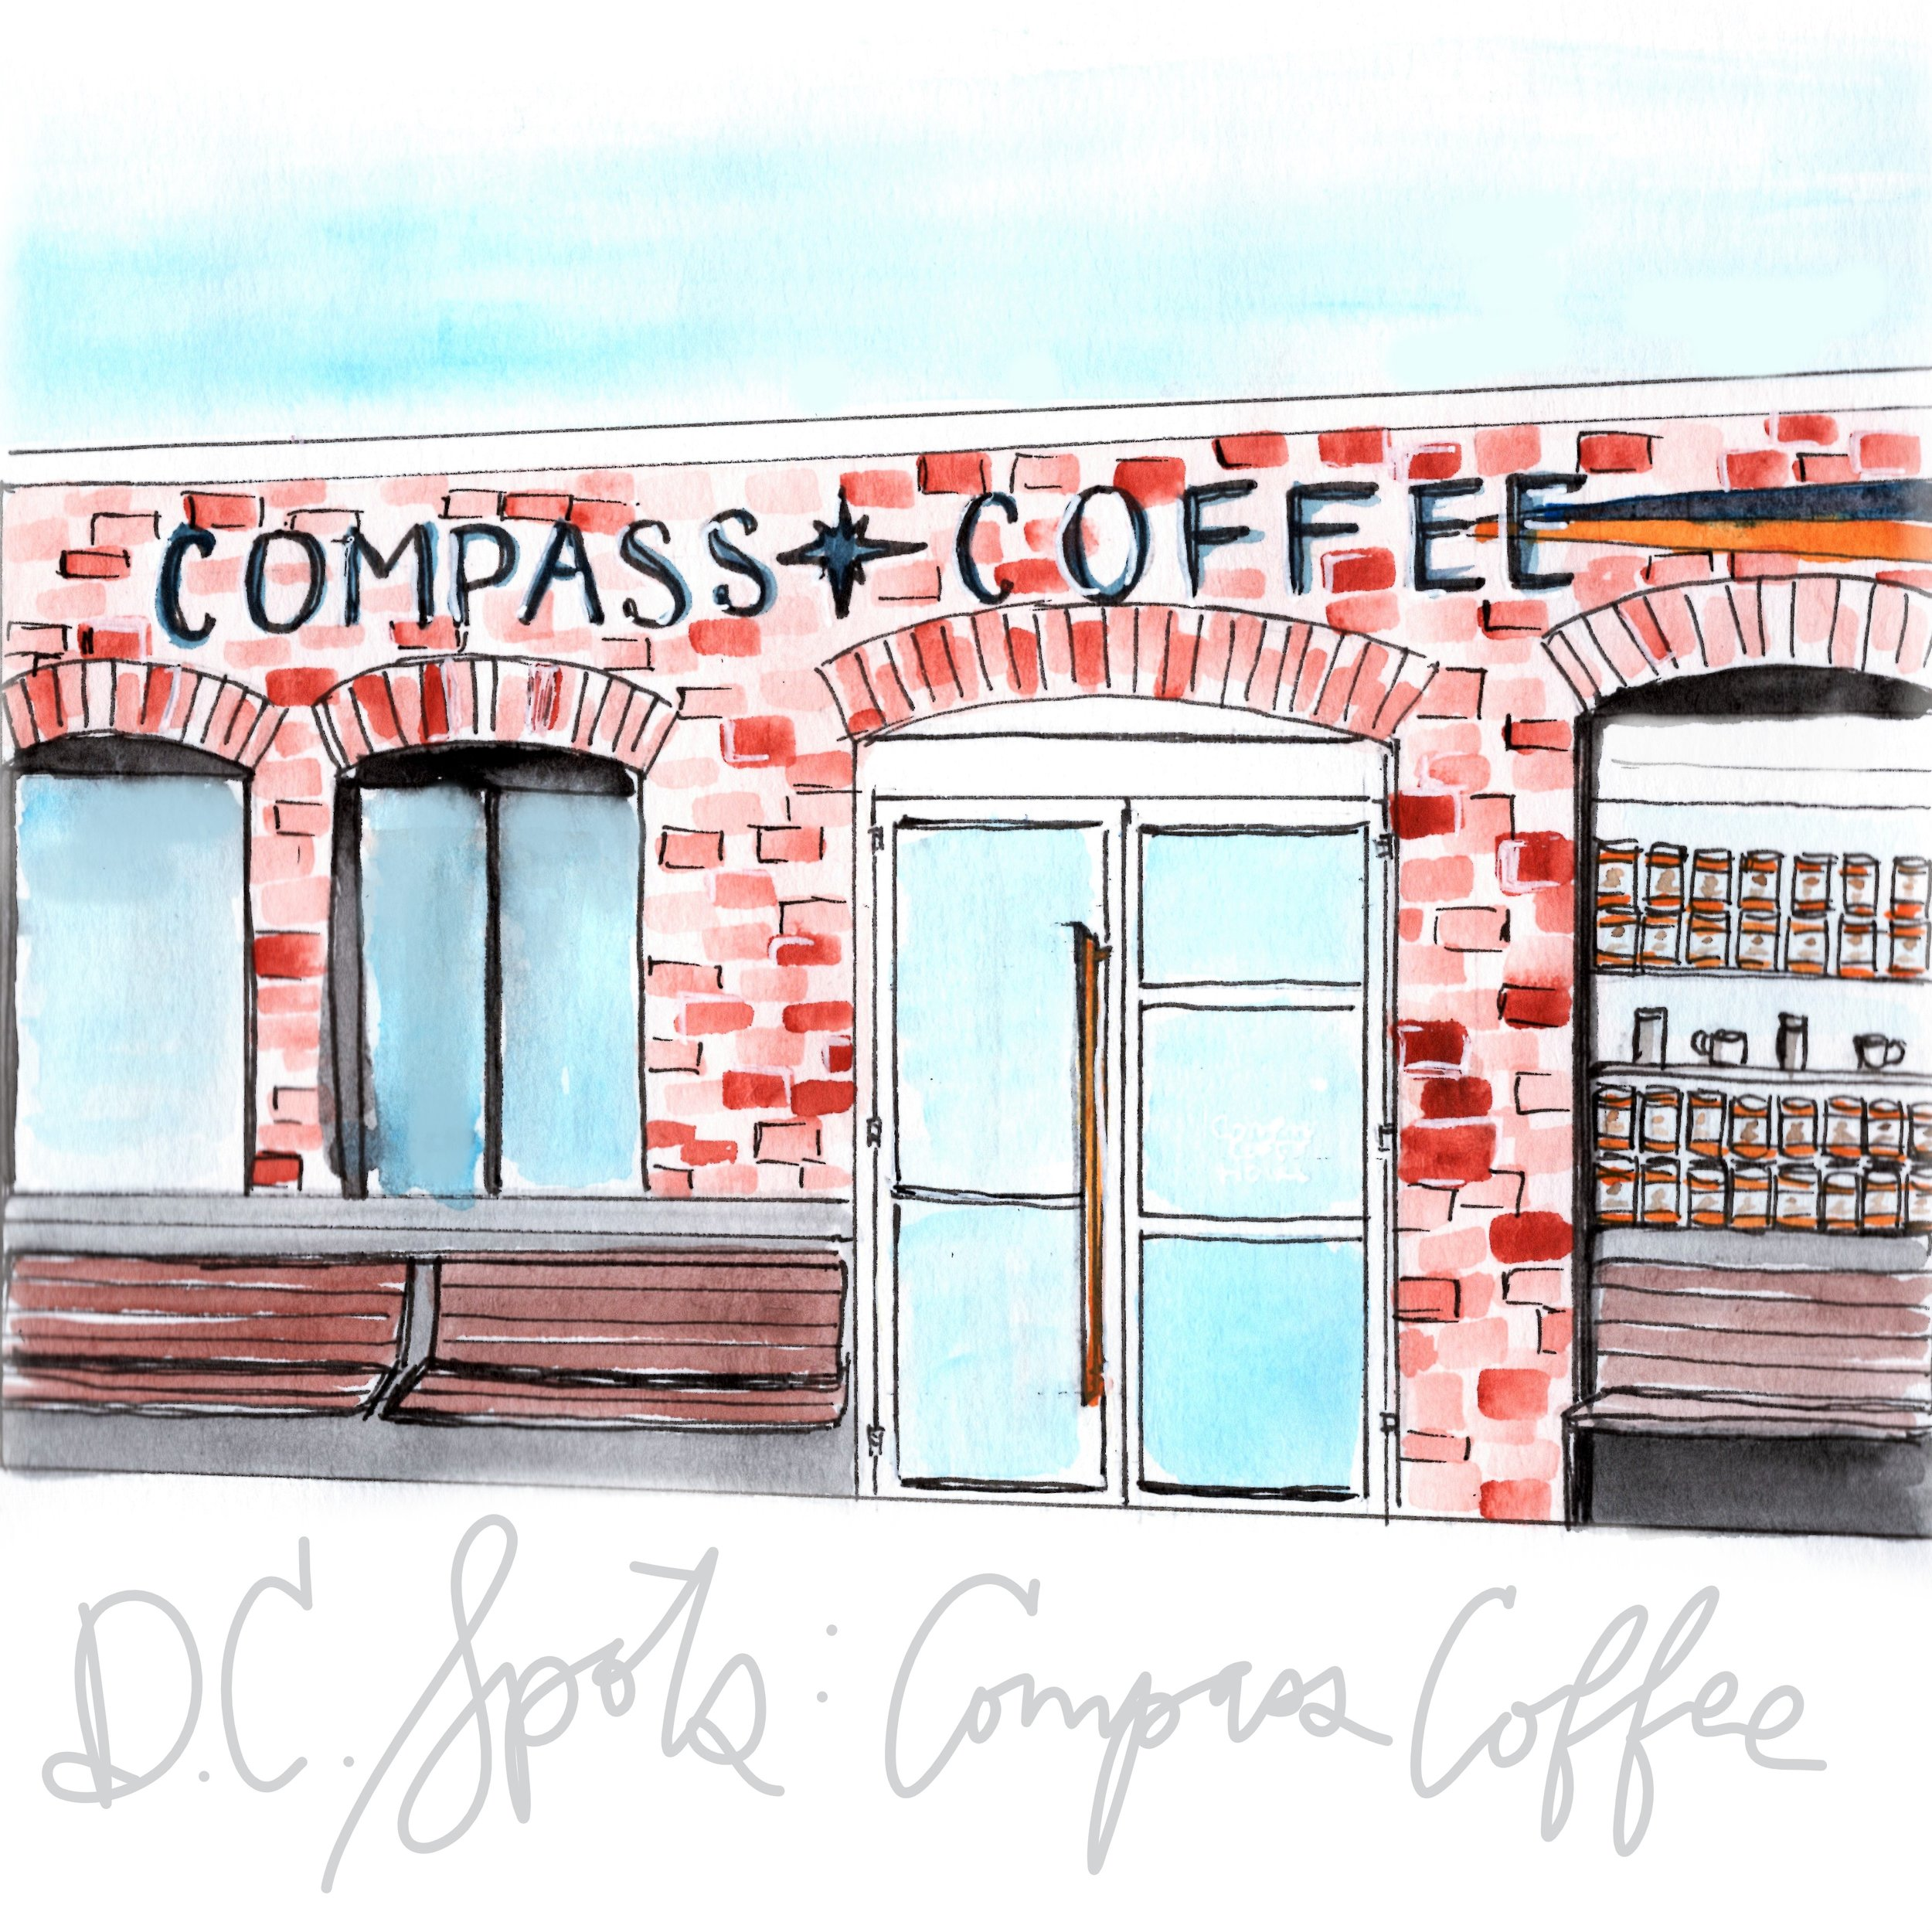 Desert 2 District Design II Compass Coffee - 7th Street